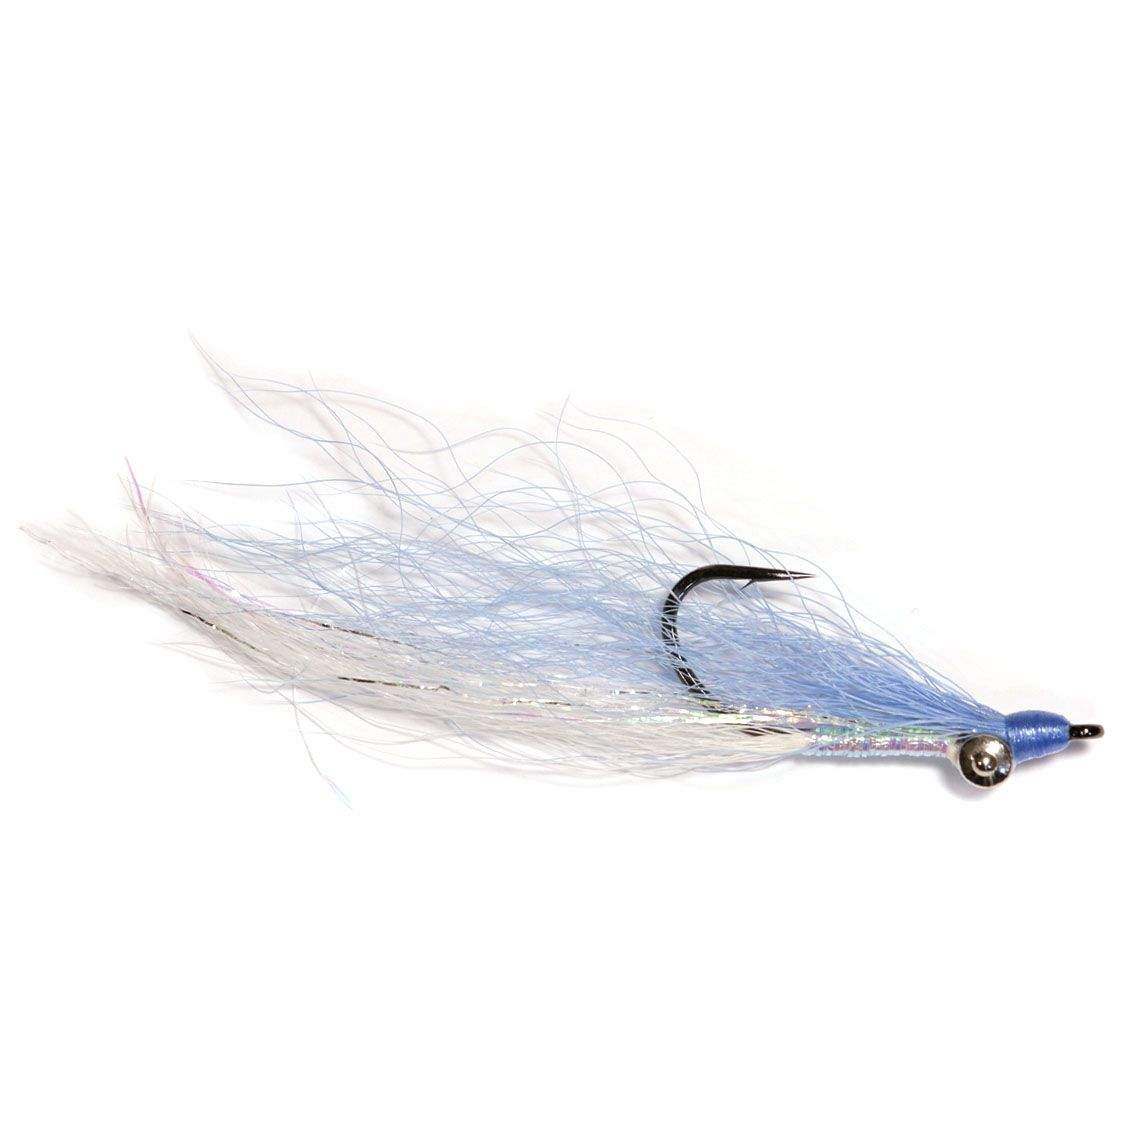 Clouser Minnow Bucktail (#2/0)